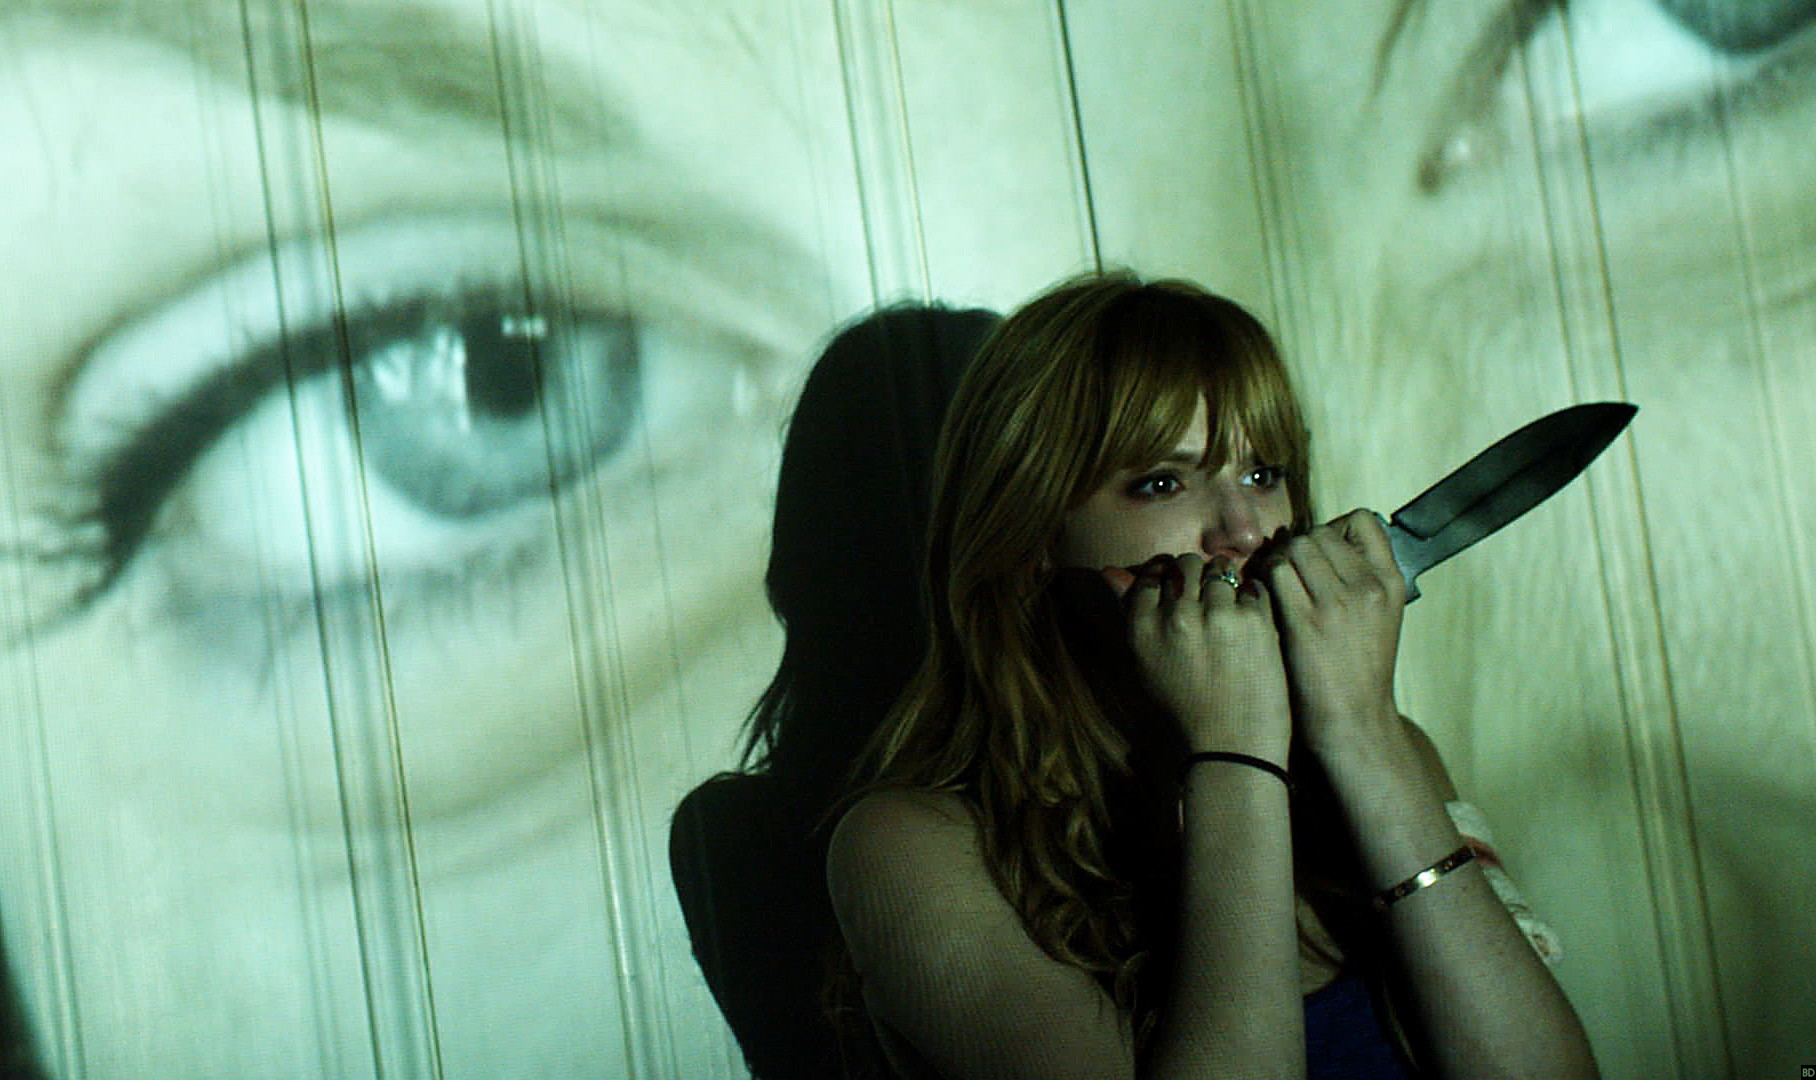 Bella Thorne Moves into 'Maniac' Director's 'Penthouse A' [AFM] - Bloody Disgusting